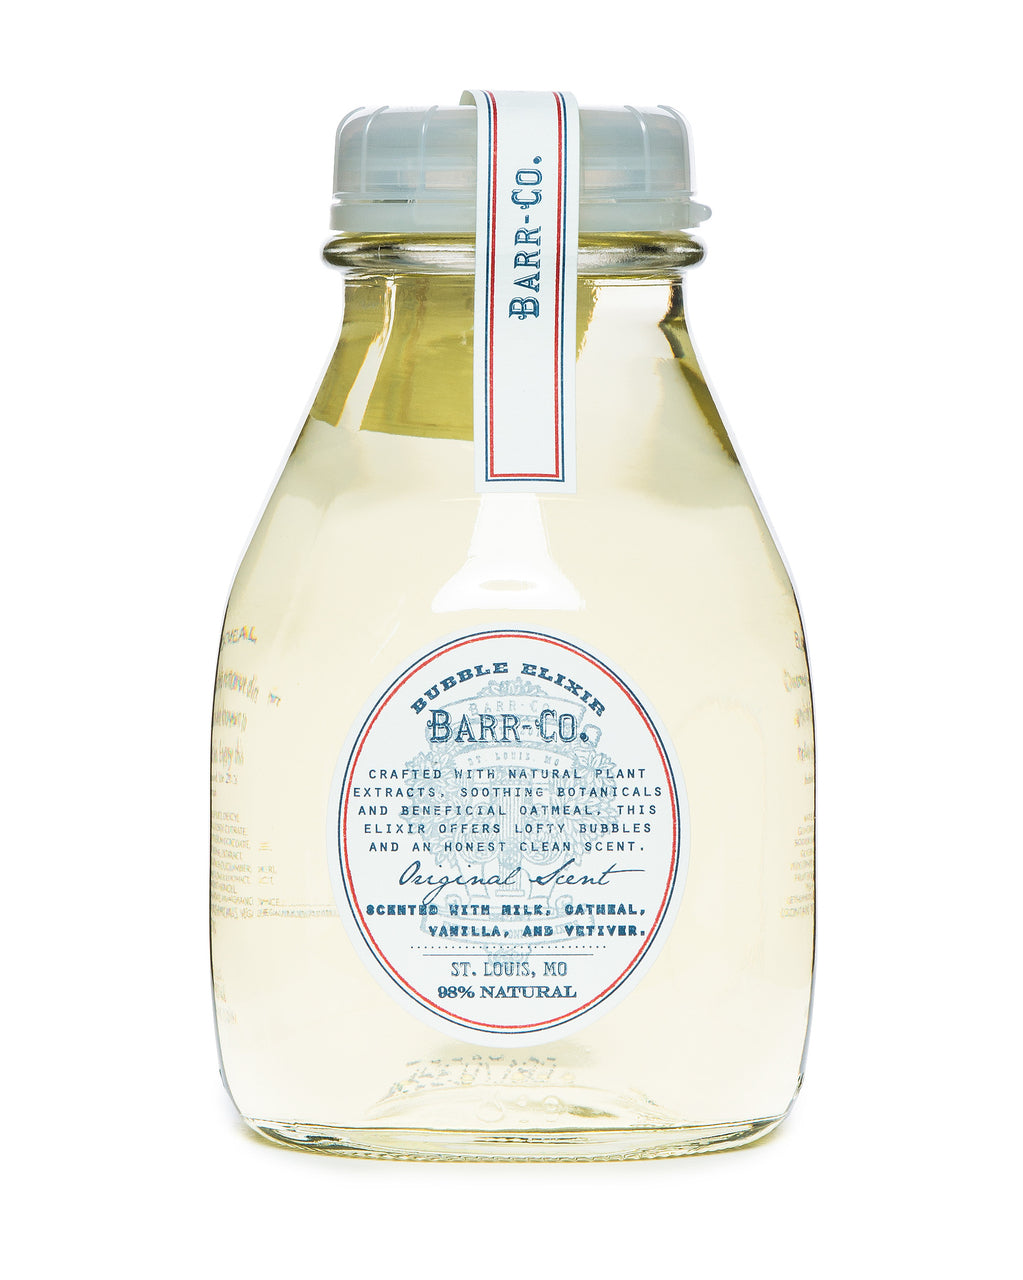 Barr-Co.  |  Bath Elixir Bubble Bath